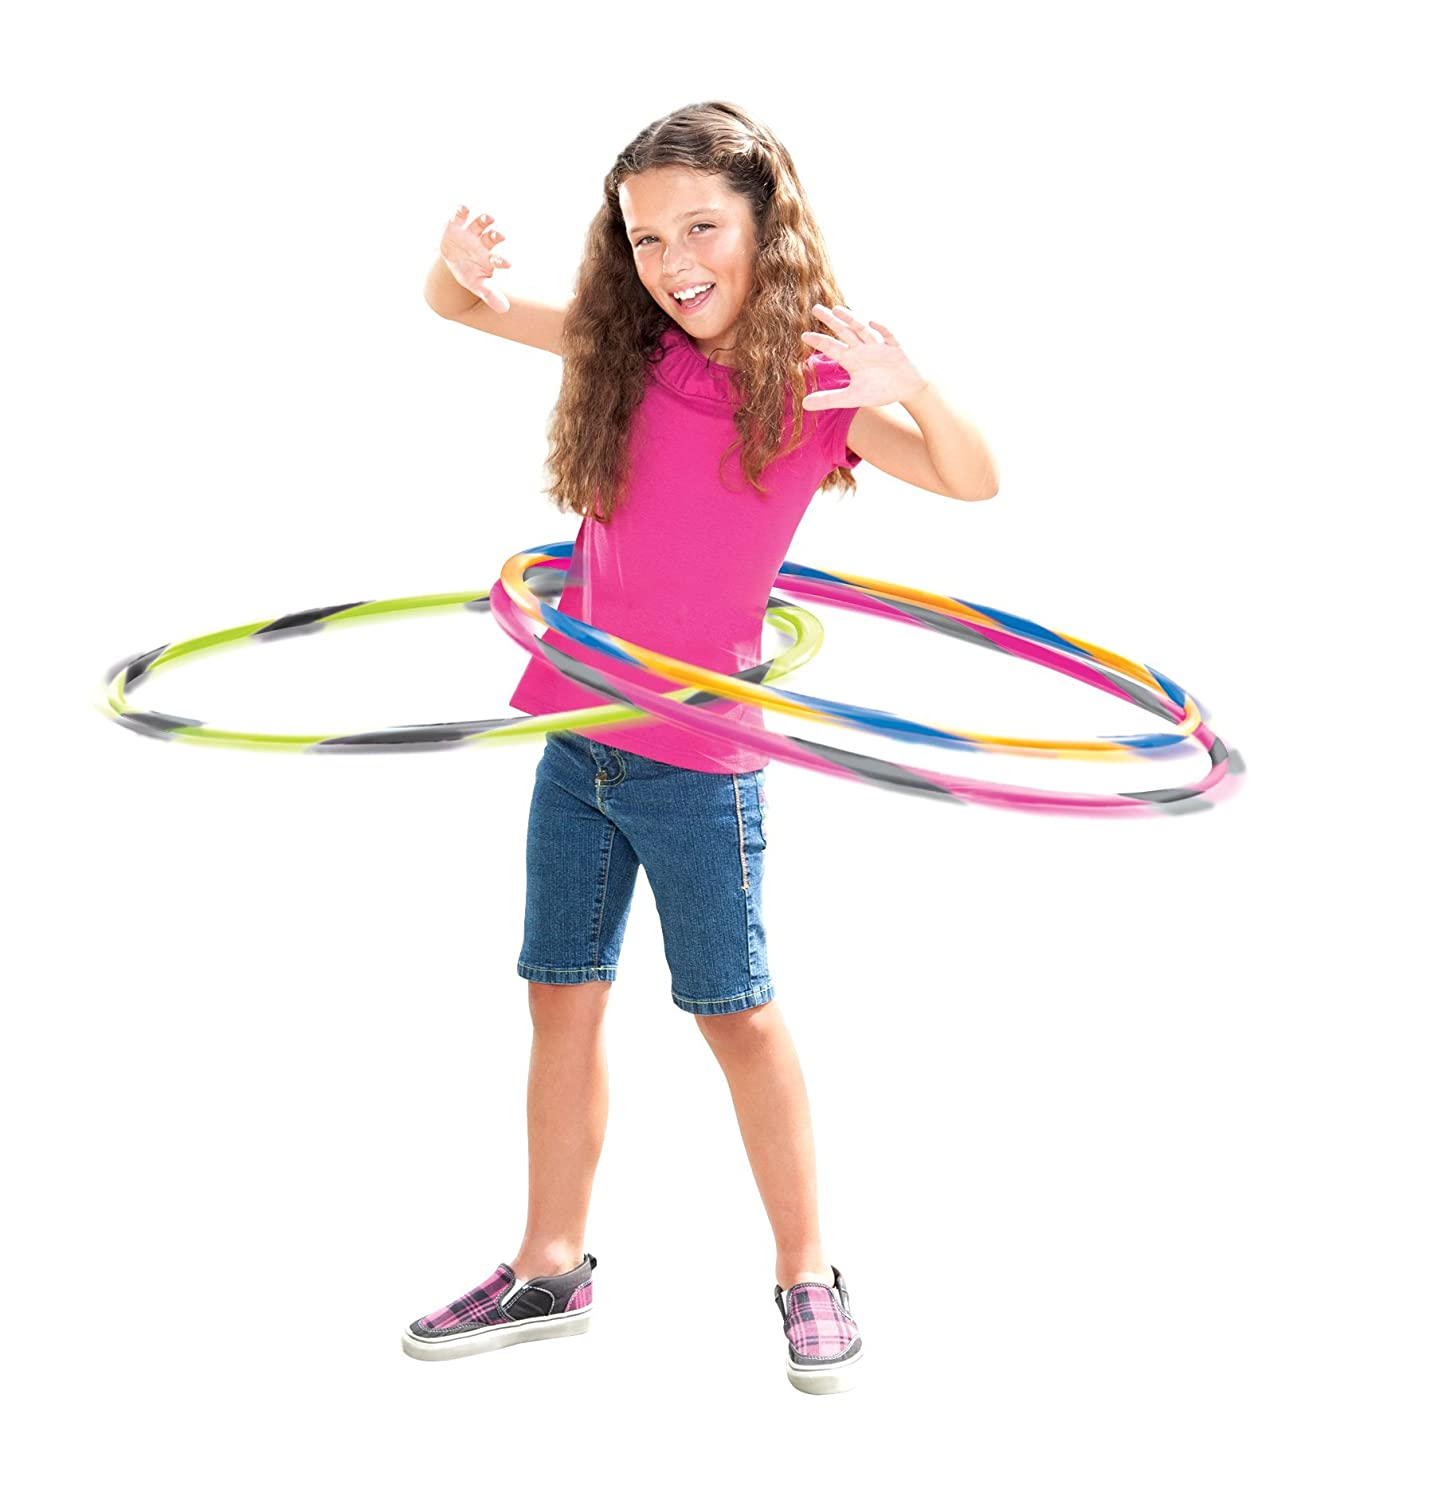 kids hula hoop images galleries with a bite. Black Bedroom Furniture Sets. Home Design Ideas